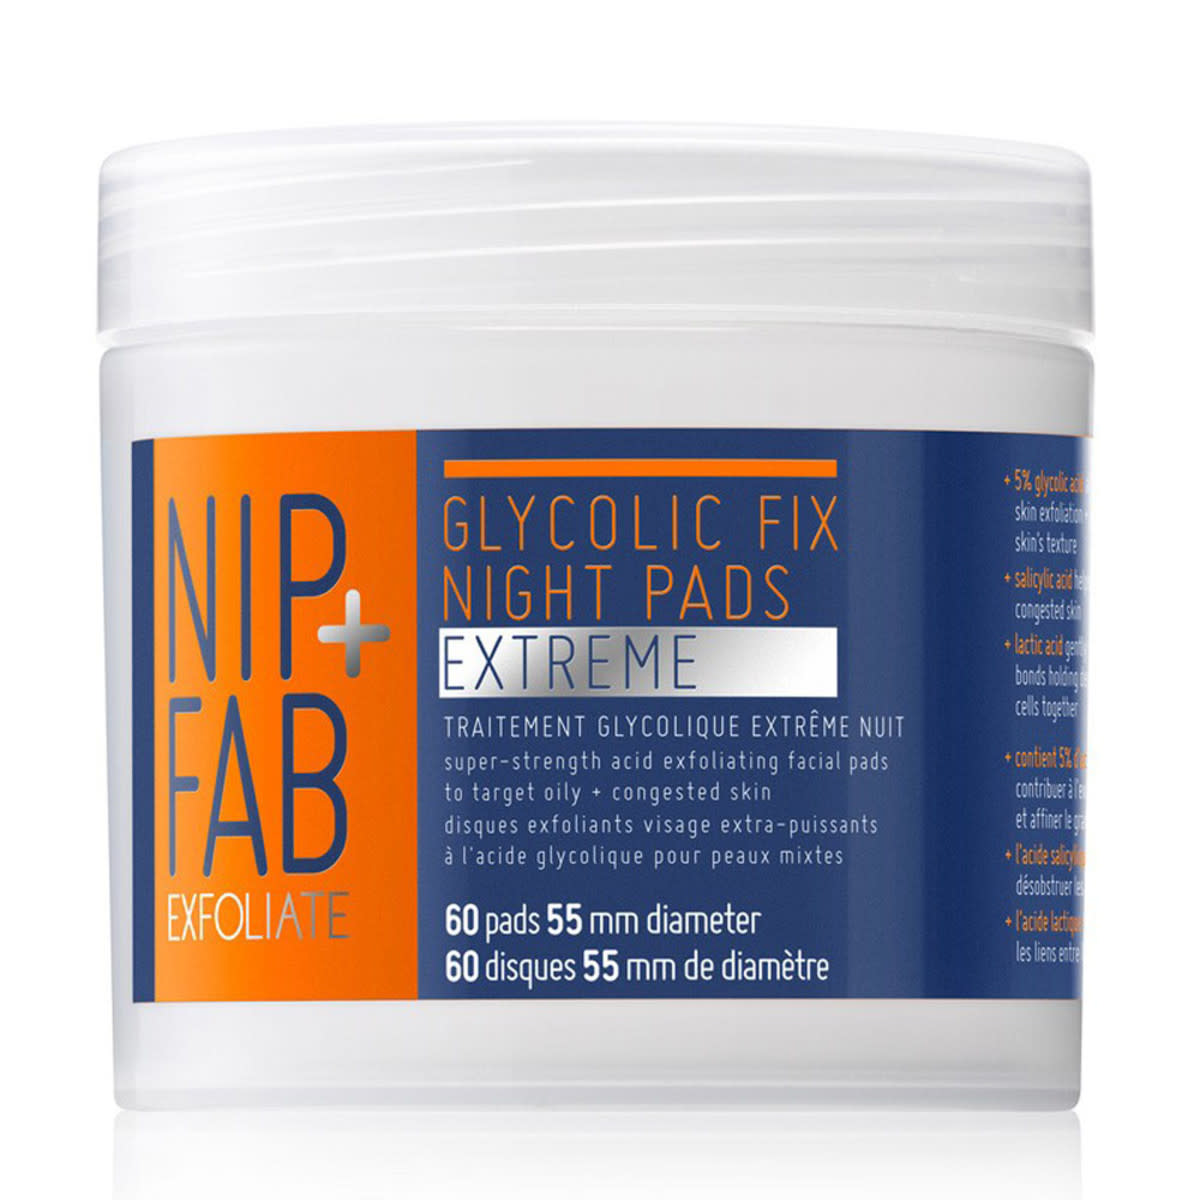 Nip and Fab Glycolic Fix Night Pads Extreme